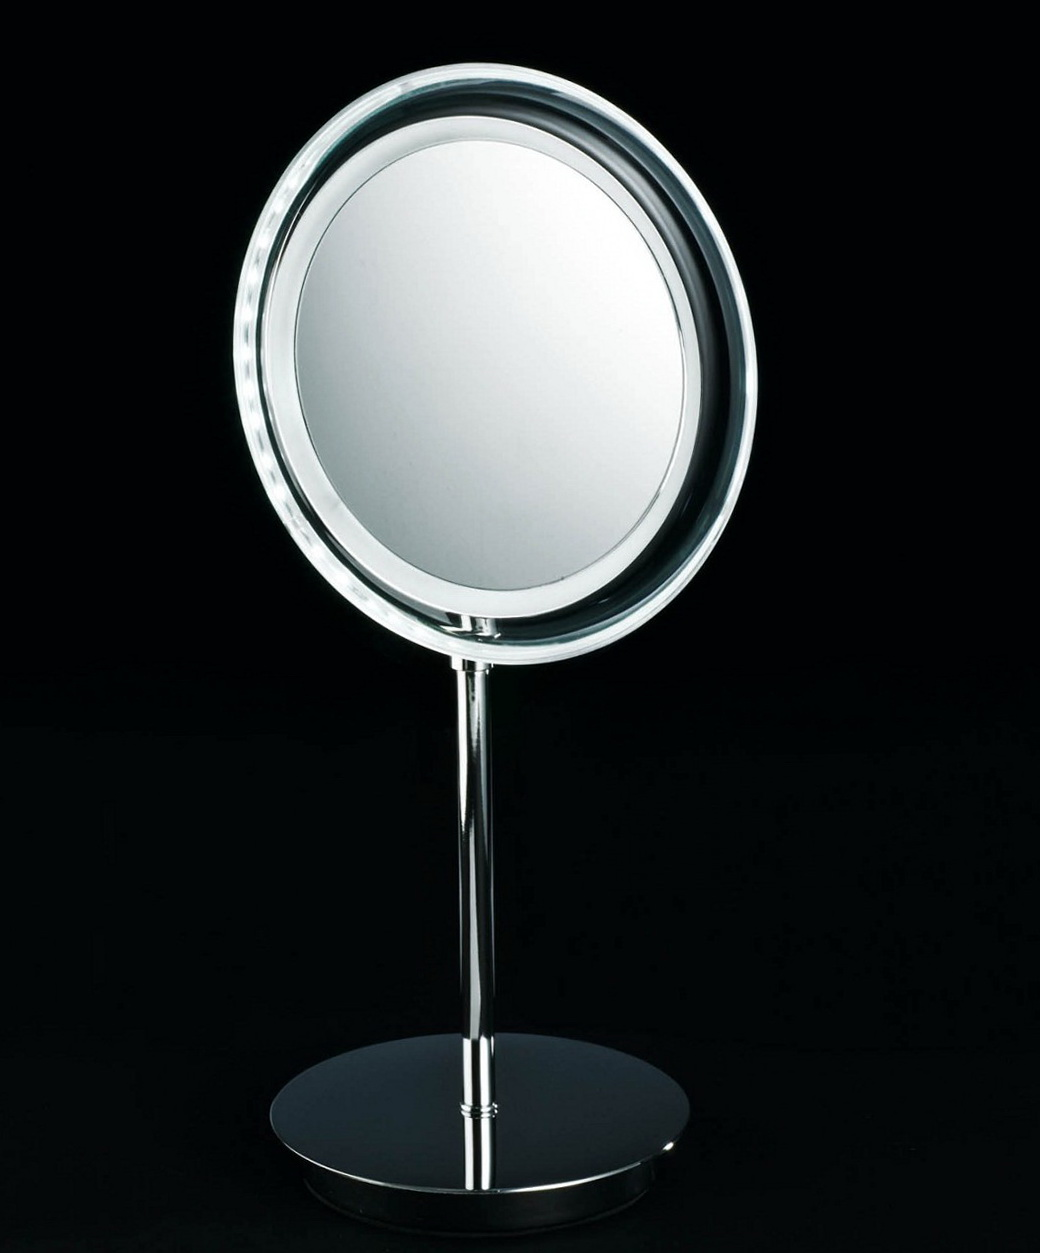 Lighted Makeup Mirror Walmart